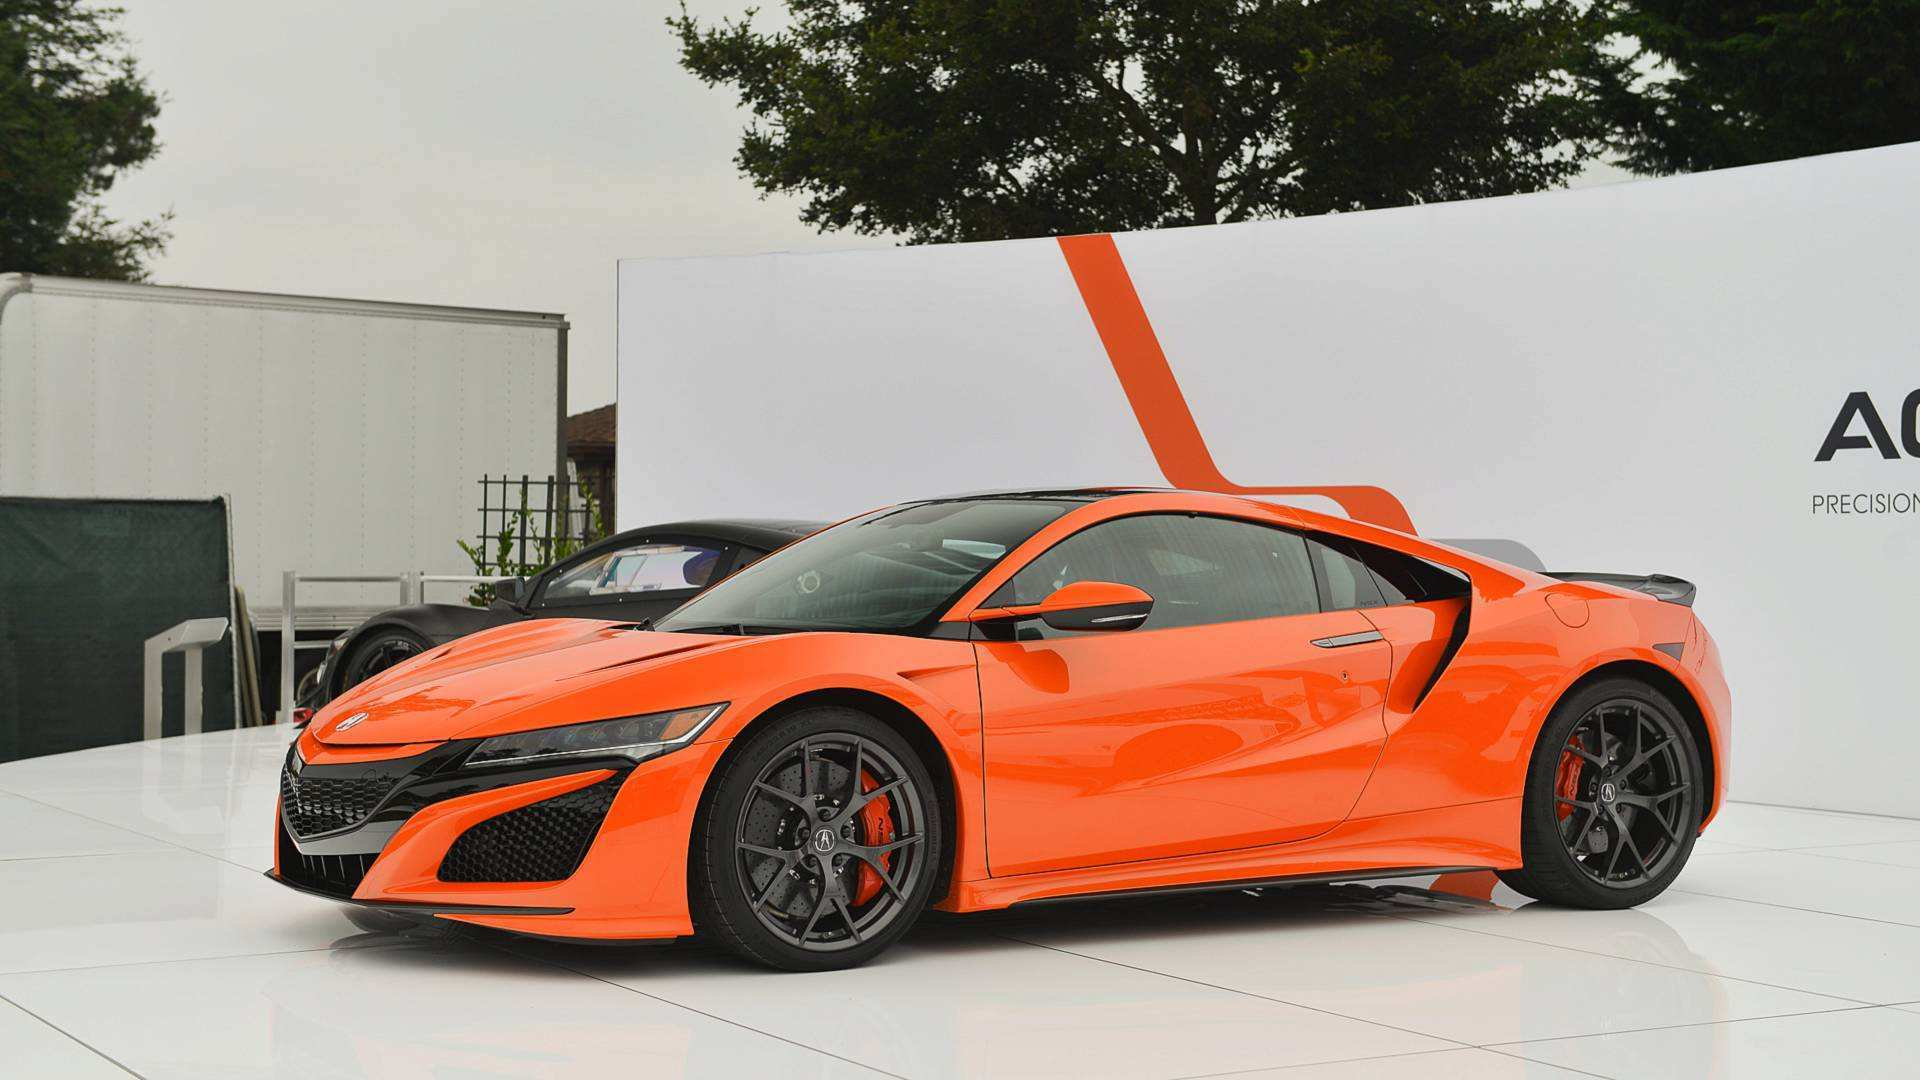 75 Gallery of 2019 Acura Nsx Horsepower Pricing for 2019 Acura Nsx Horsepower